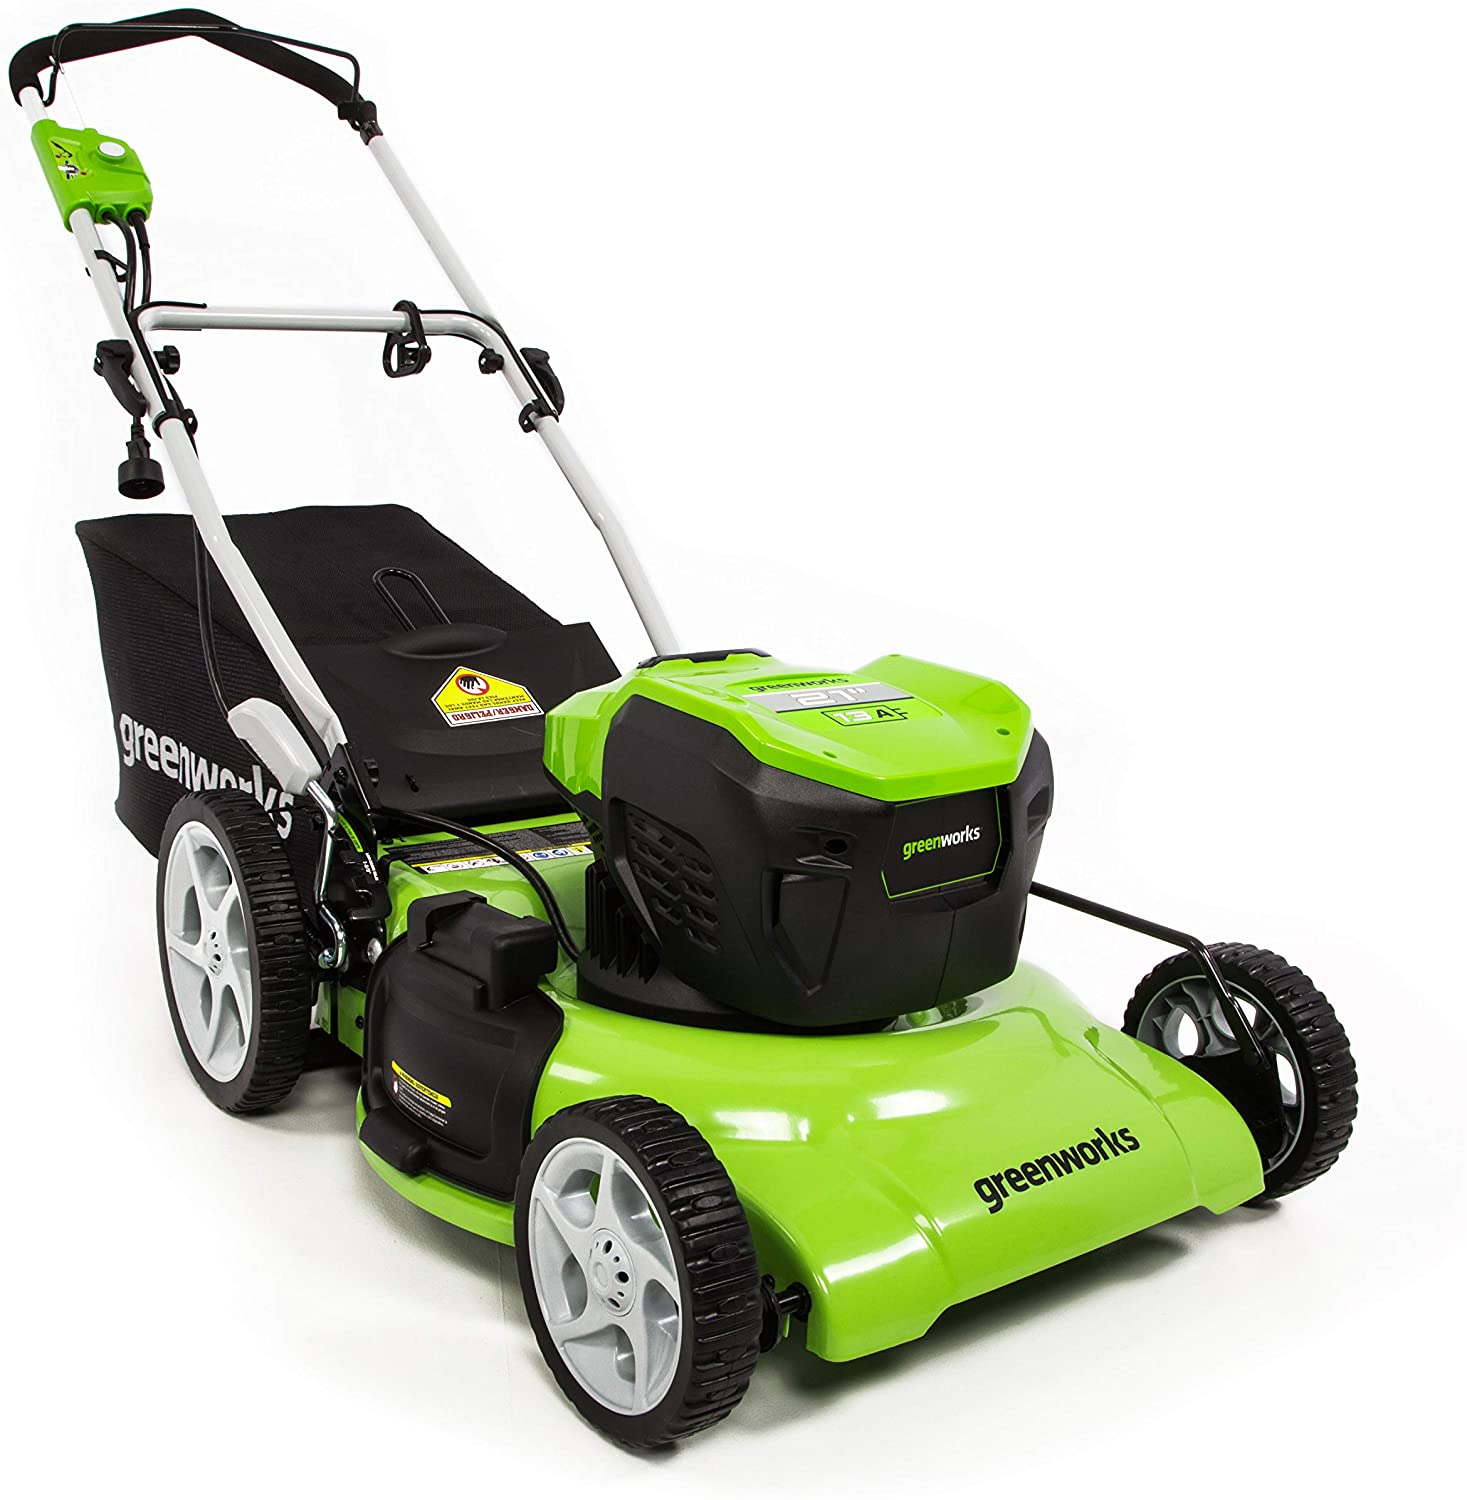 Greenworks 21-Inch 13 Amp Corded Lawn Mower